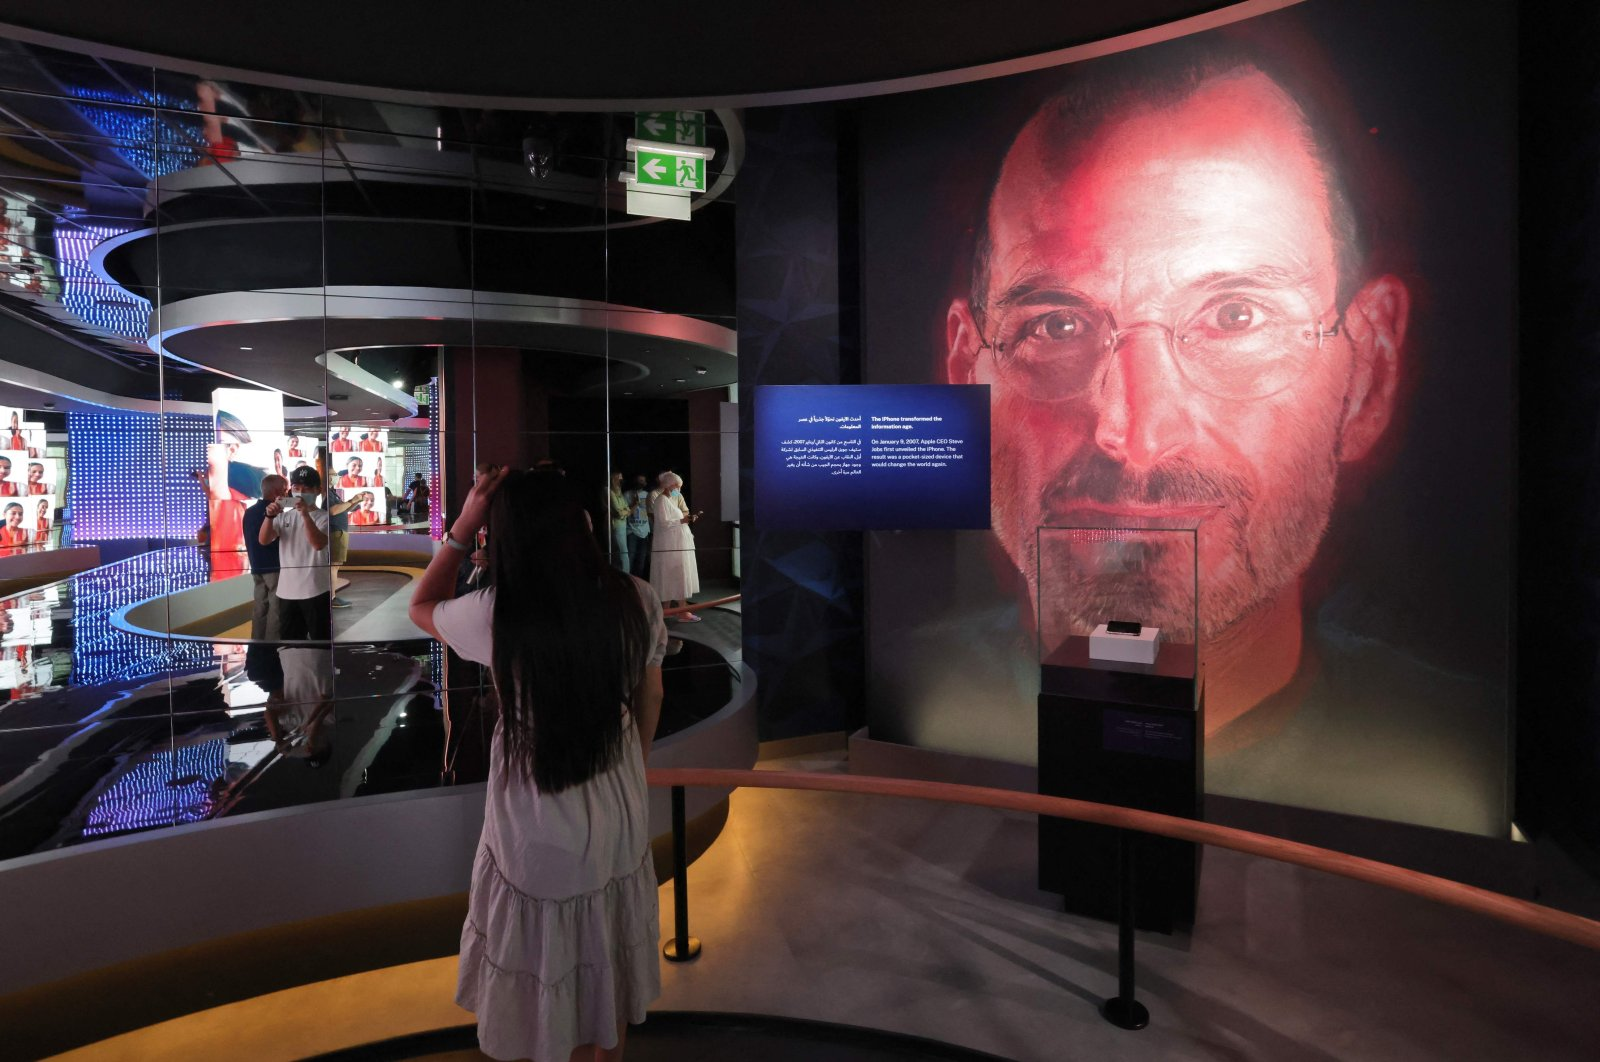 An image of Apple founder and late CEO Steve Jobs is displayed in the interior of the U.S. pavilion at the Dubai Expo 2020, United Arab Emirates, Oct. 1, 2021. (AFP Photo)